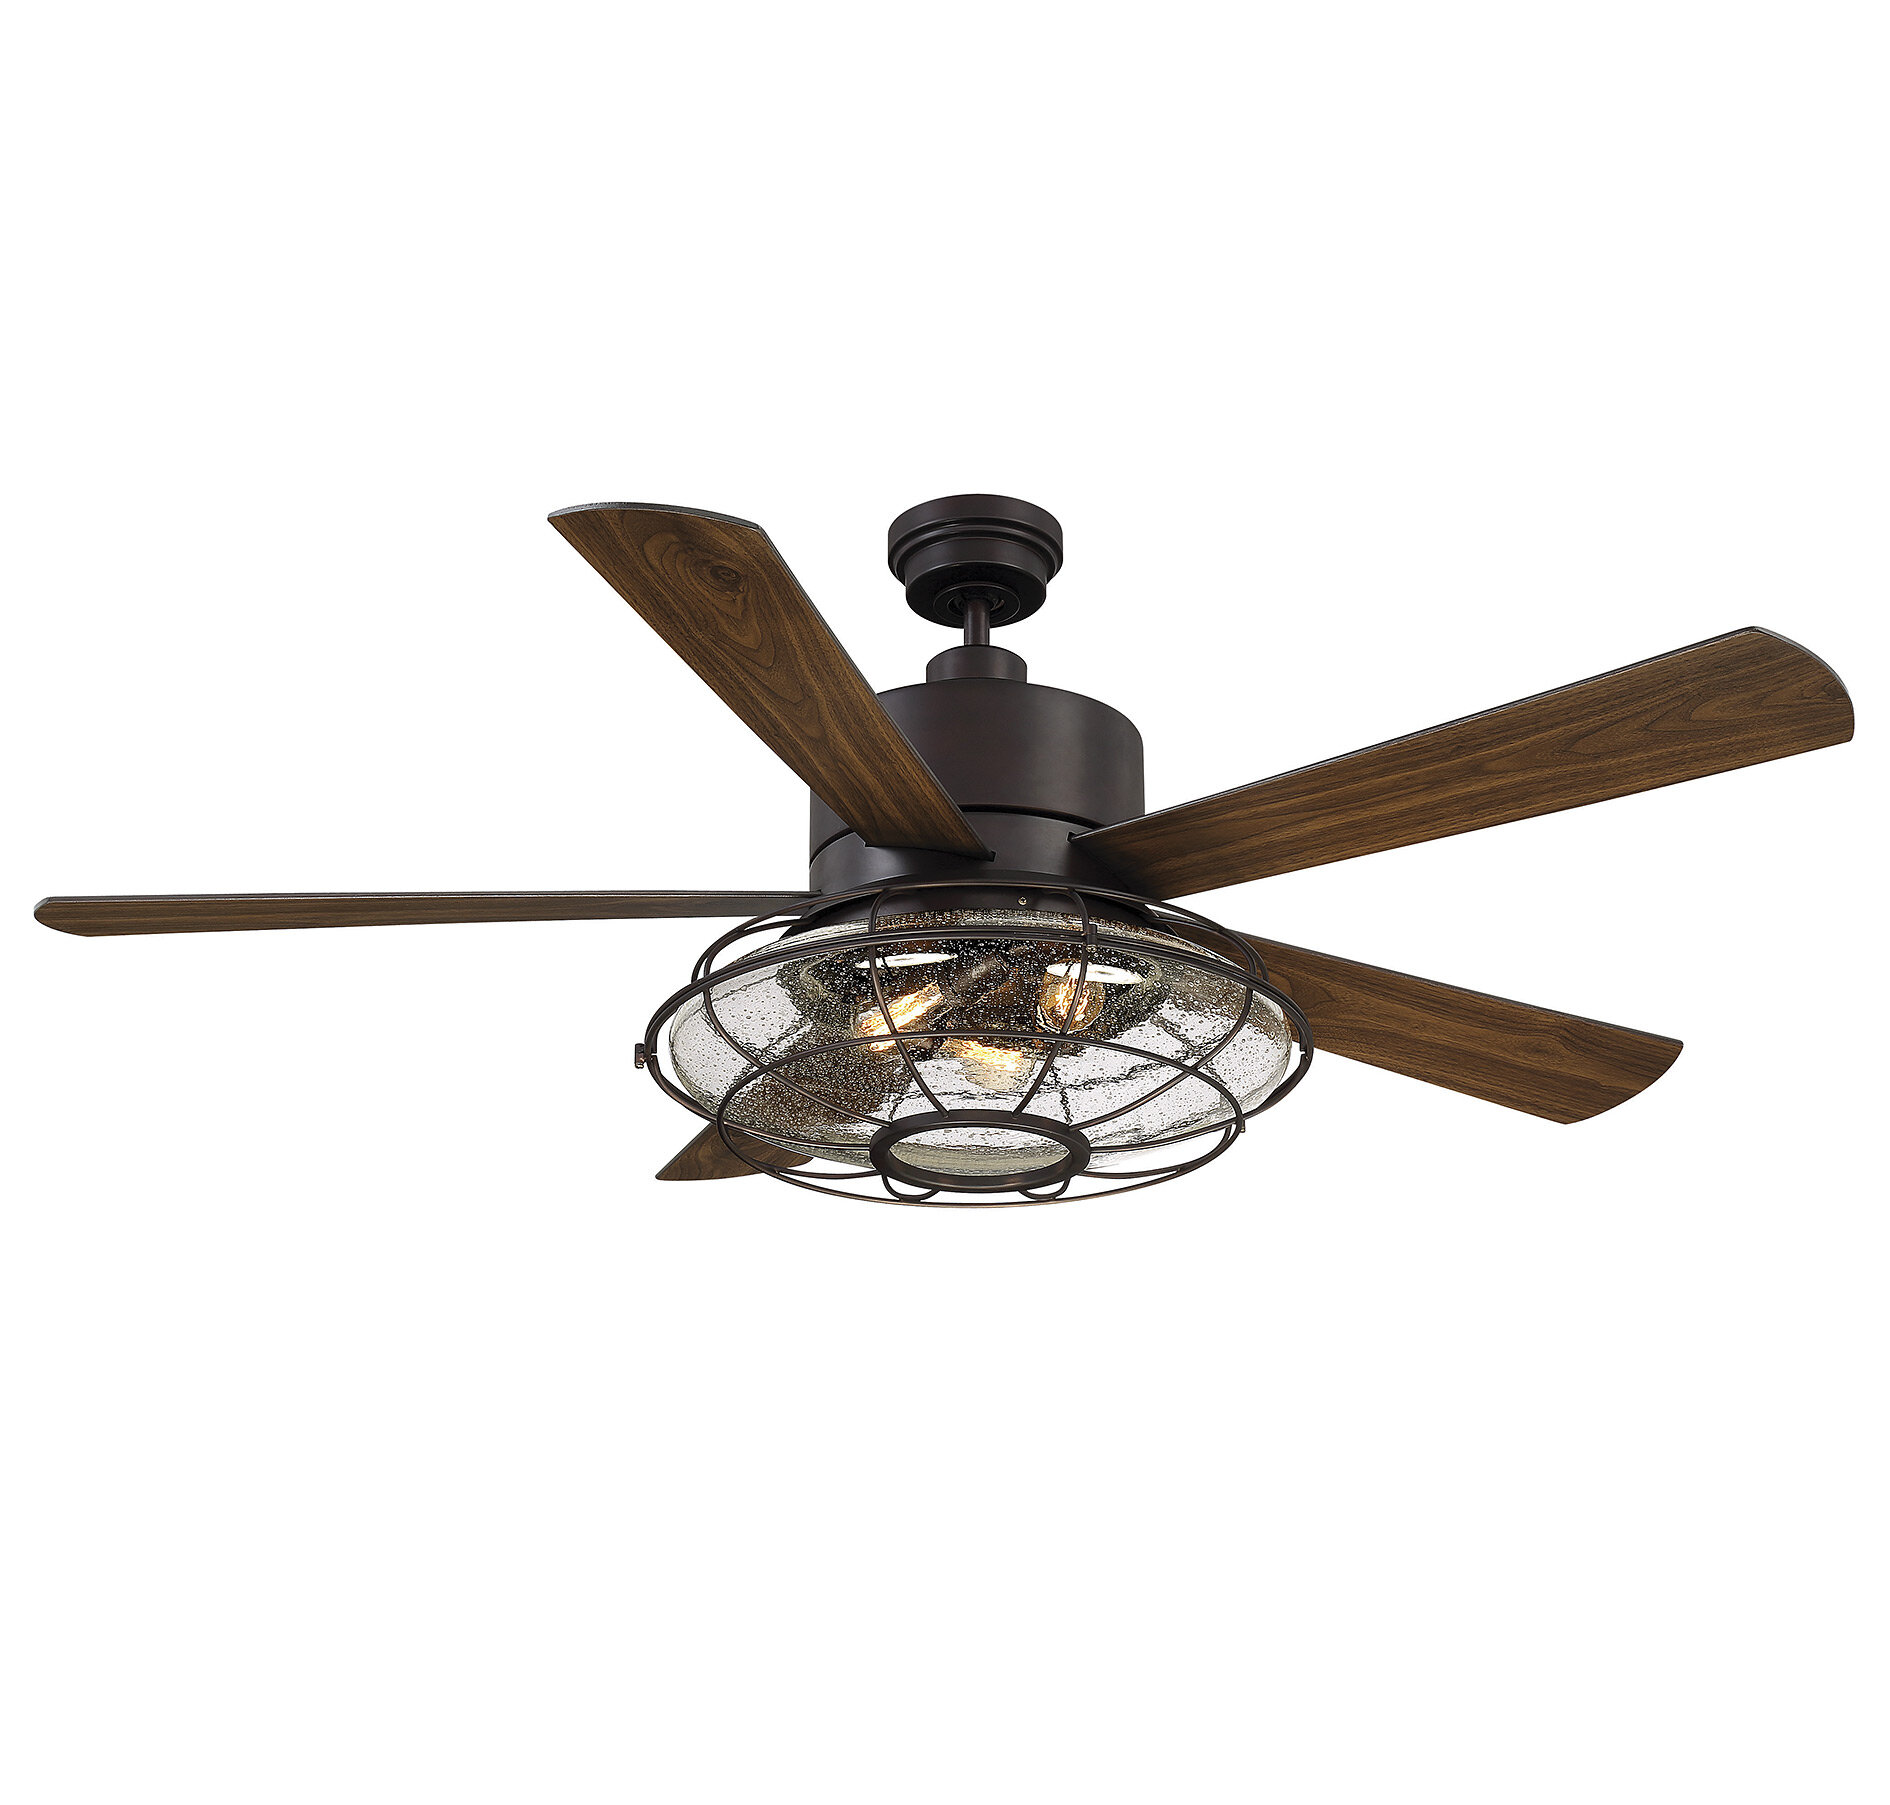 """Trent Austin Design 56"""" Roberts 5 Blade Ceiling Fan with Remote"""